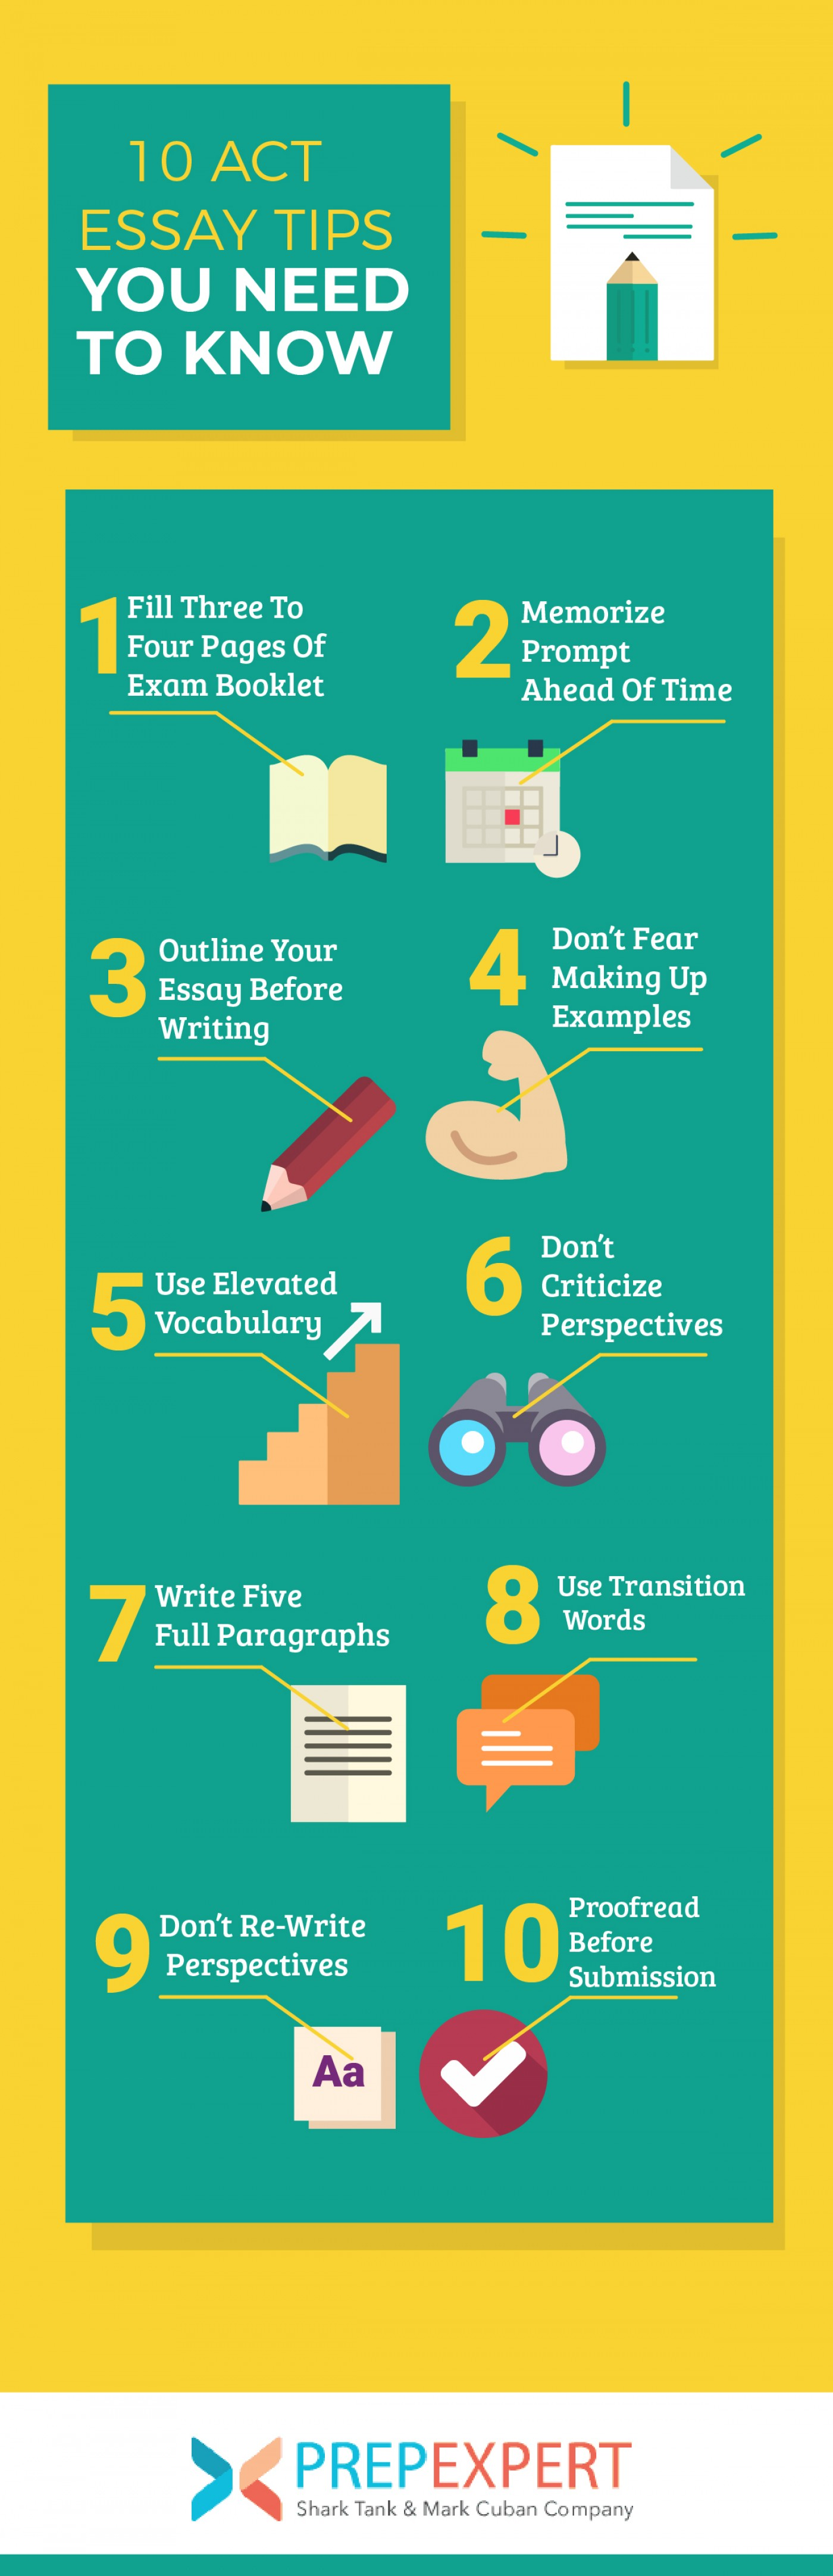 017 Essay Example Act 235585 Essayinfographics 052918 Fearsome New Time Limit Format 1400